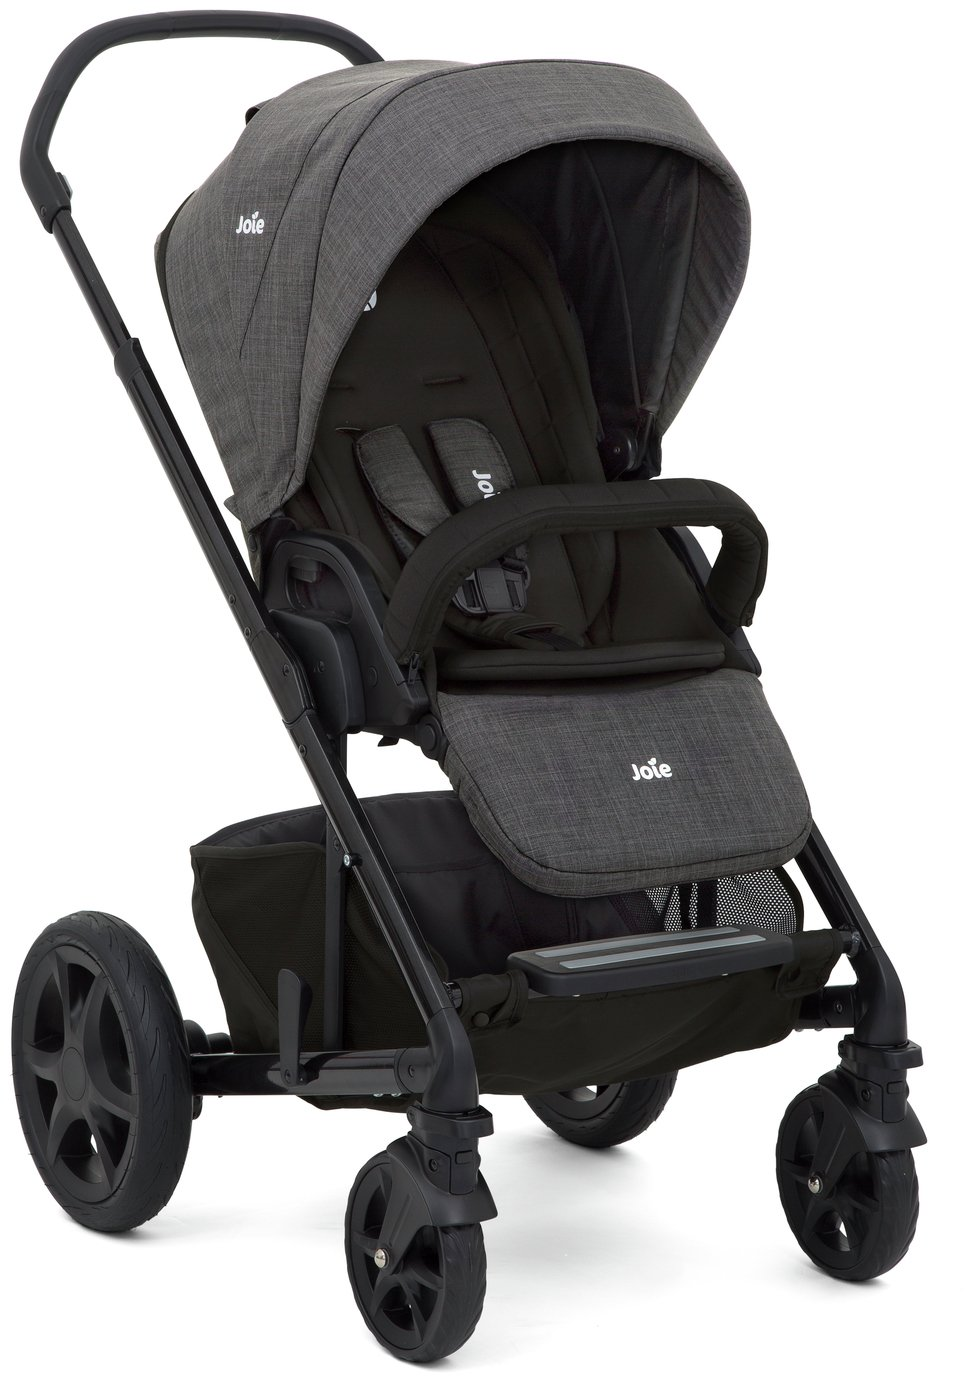 Image of Joie Chrome DLX Pushchair and Carrycot Pavement